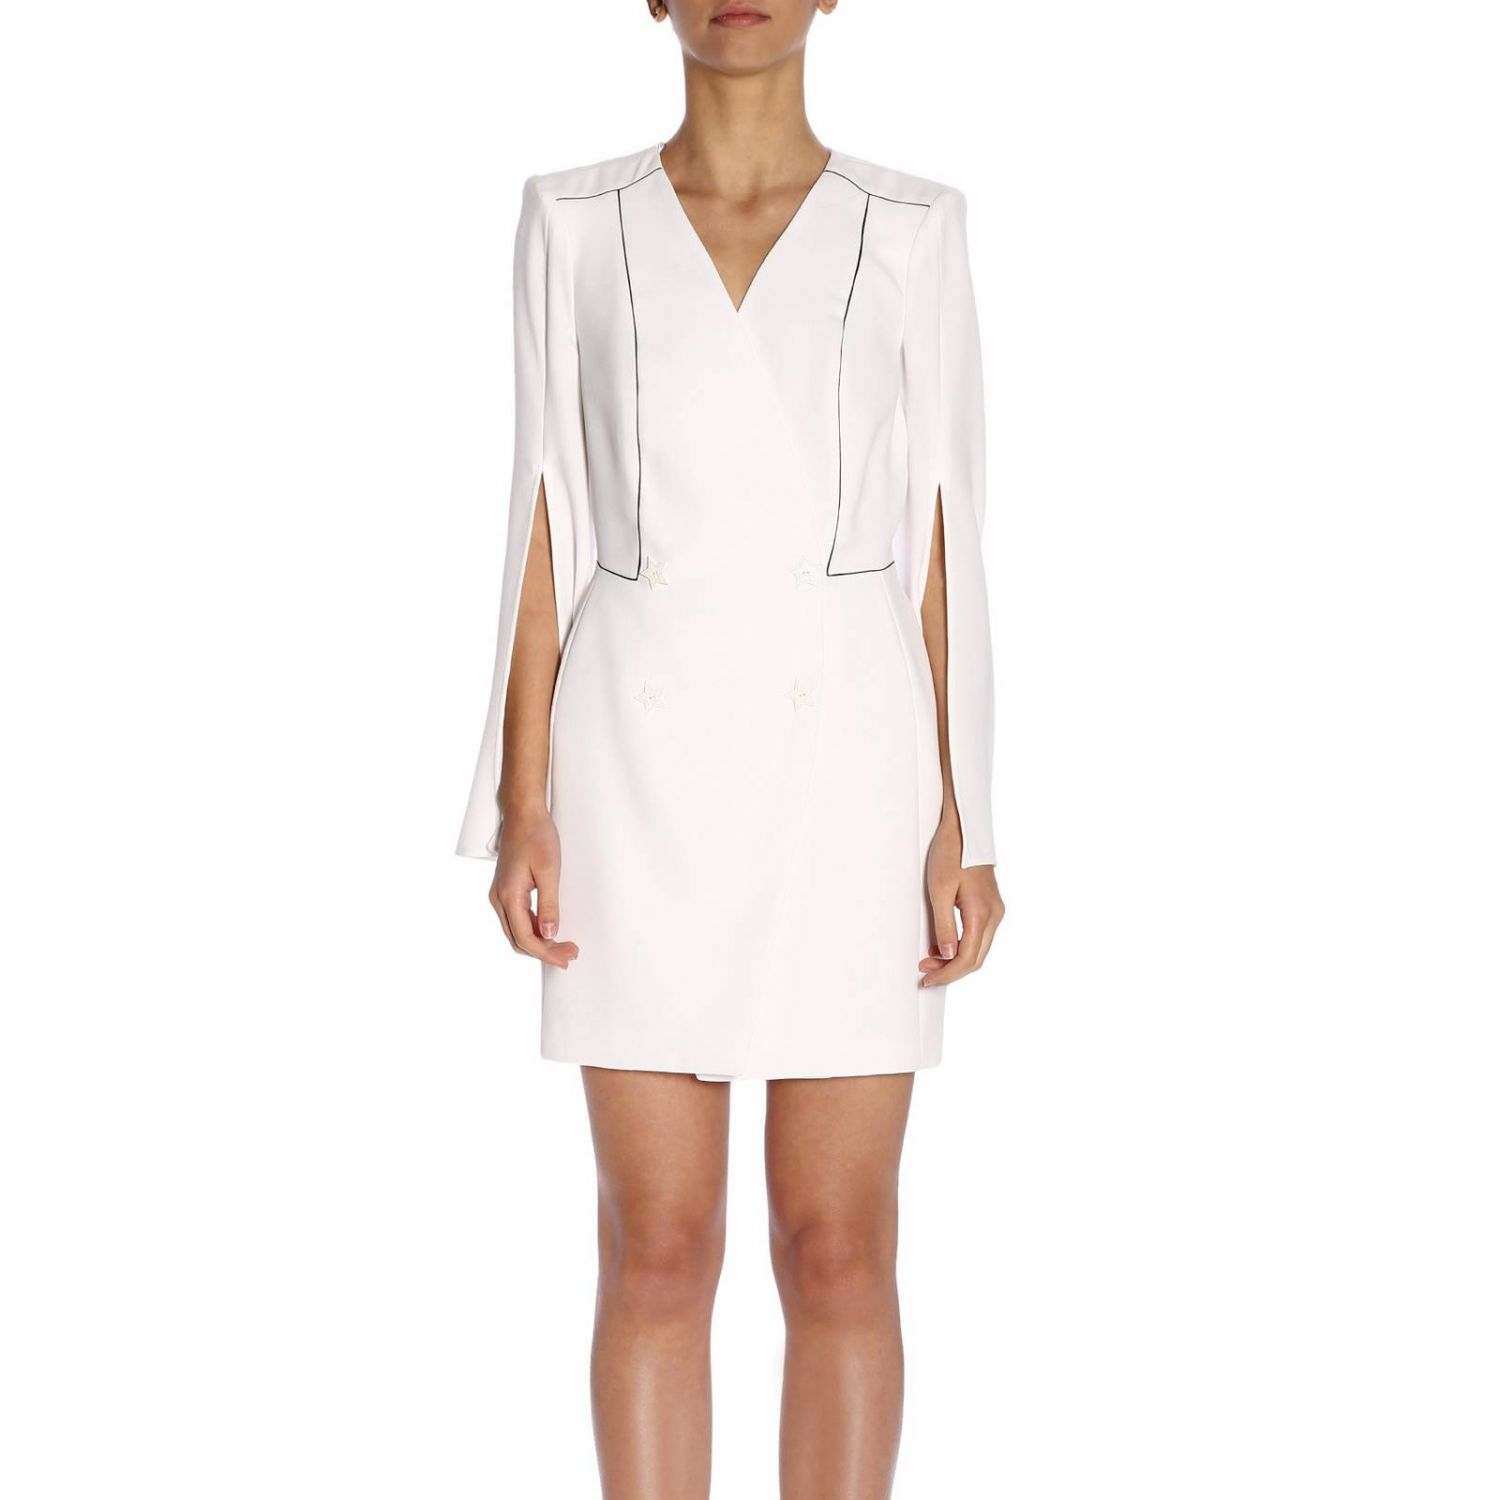 Dress women Elisabetta Franchi white 1